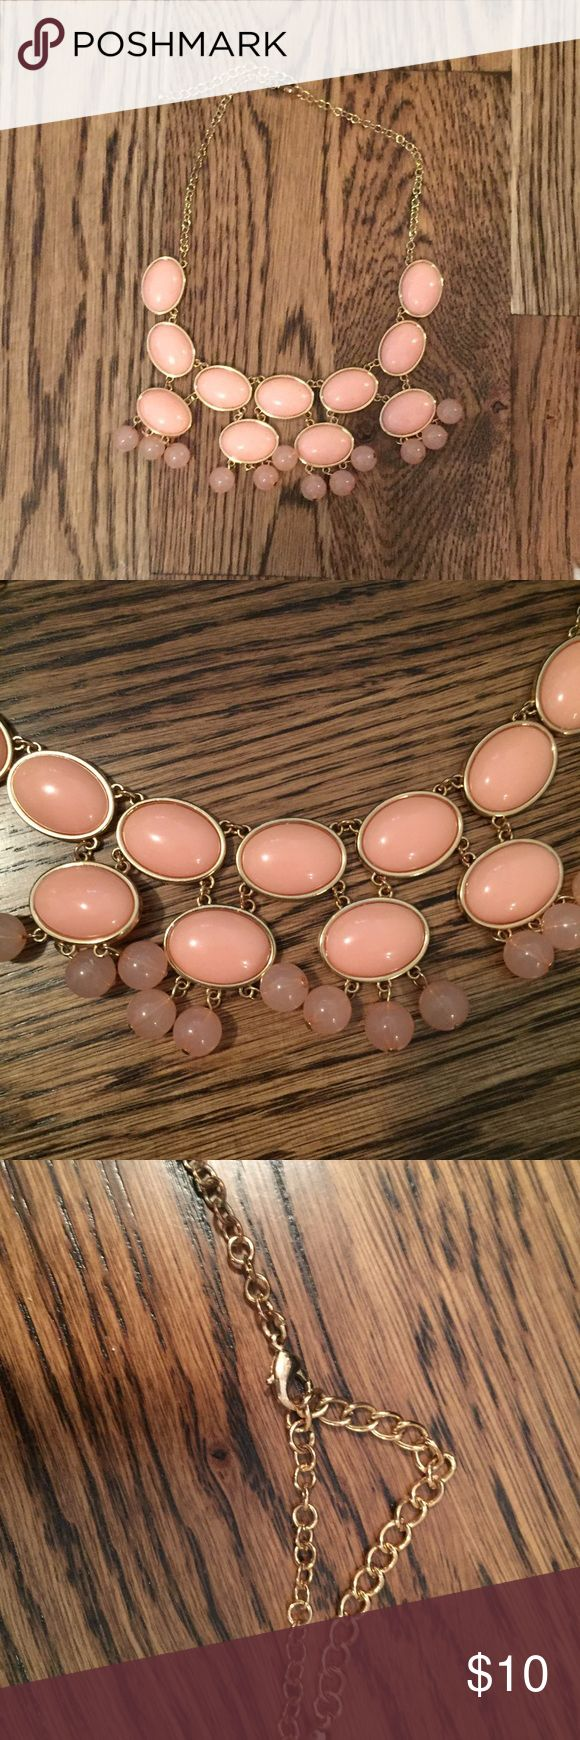 Coral Pink Peach chunky gold bubble Necklace Like new! Charming Charlie Jewelry Necklaces